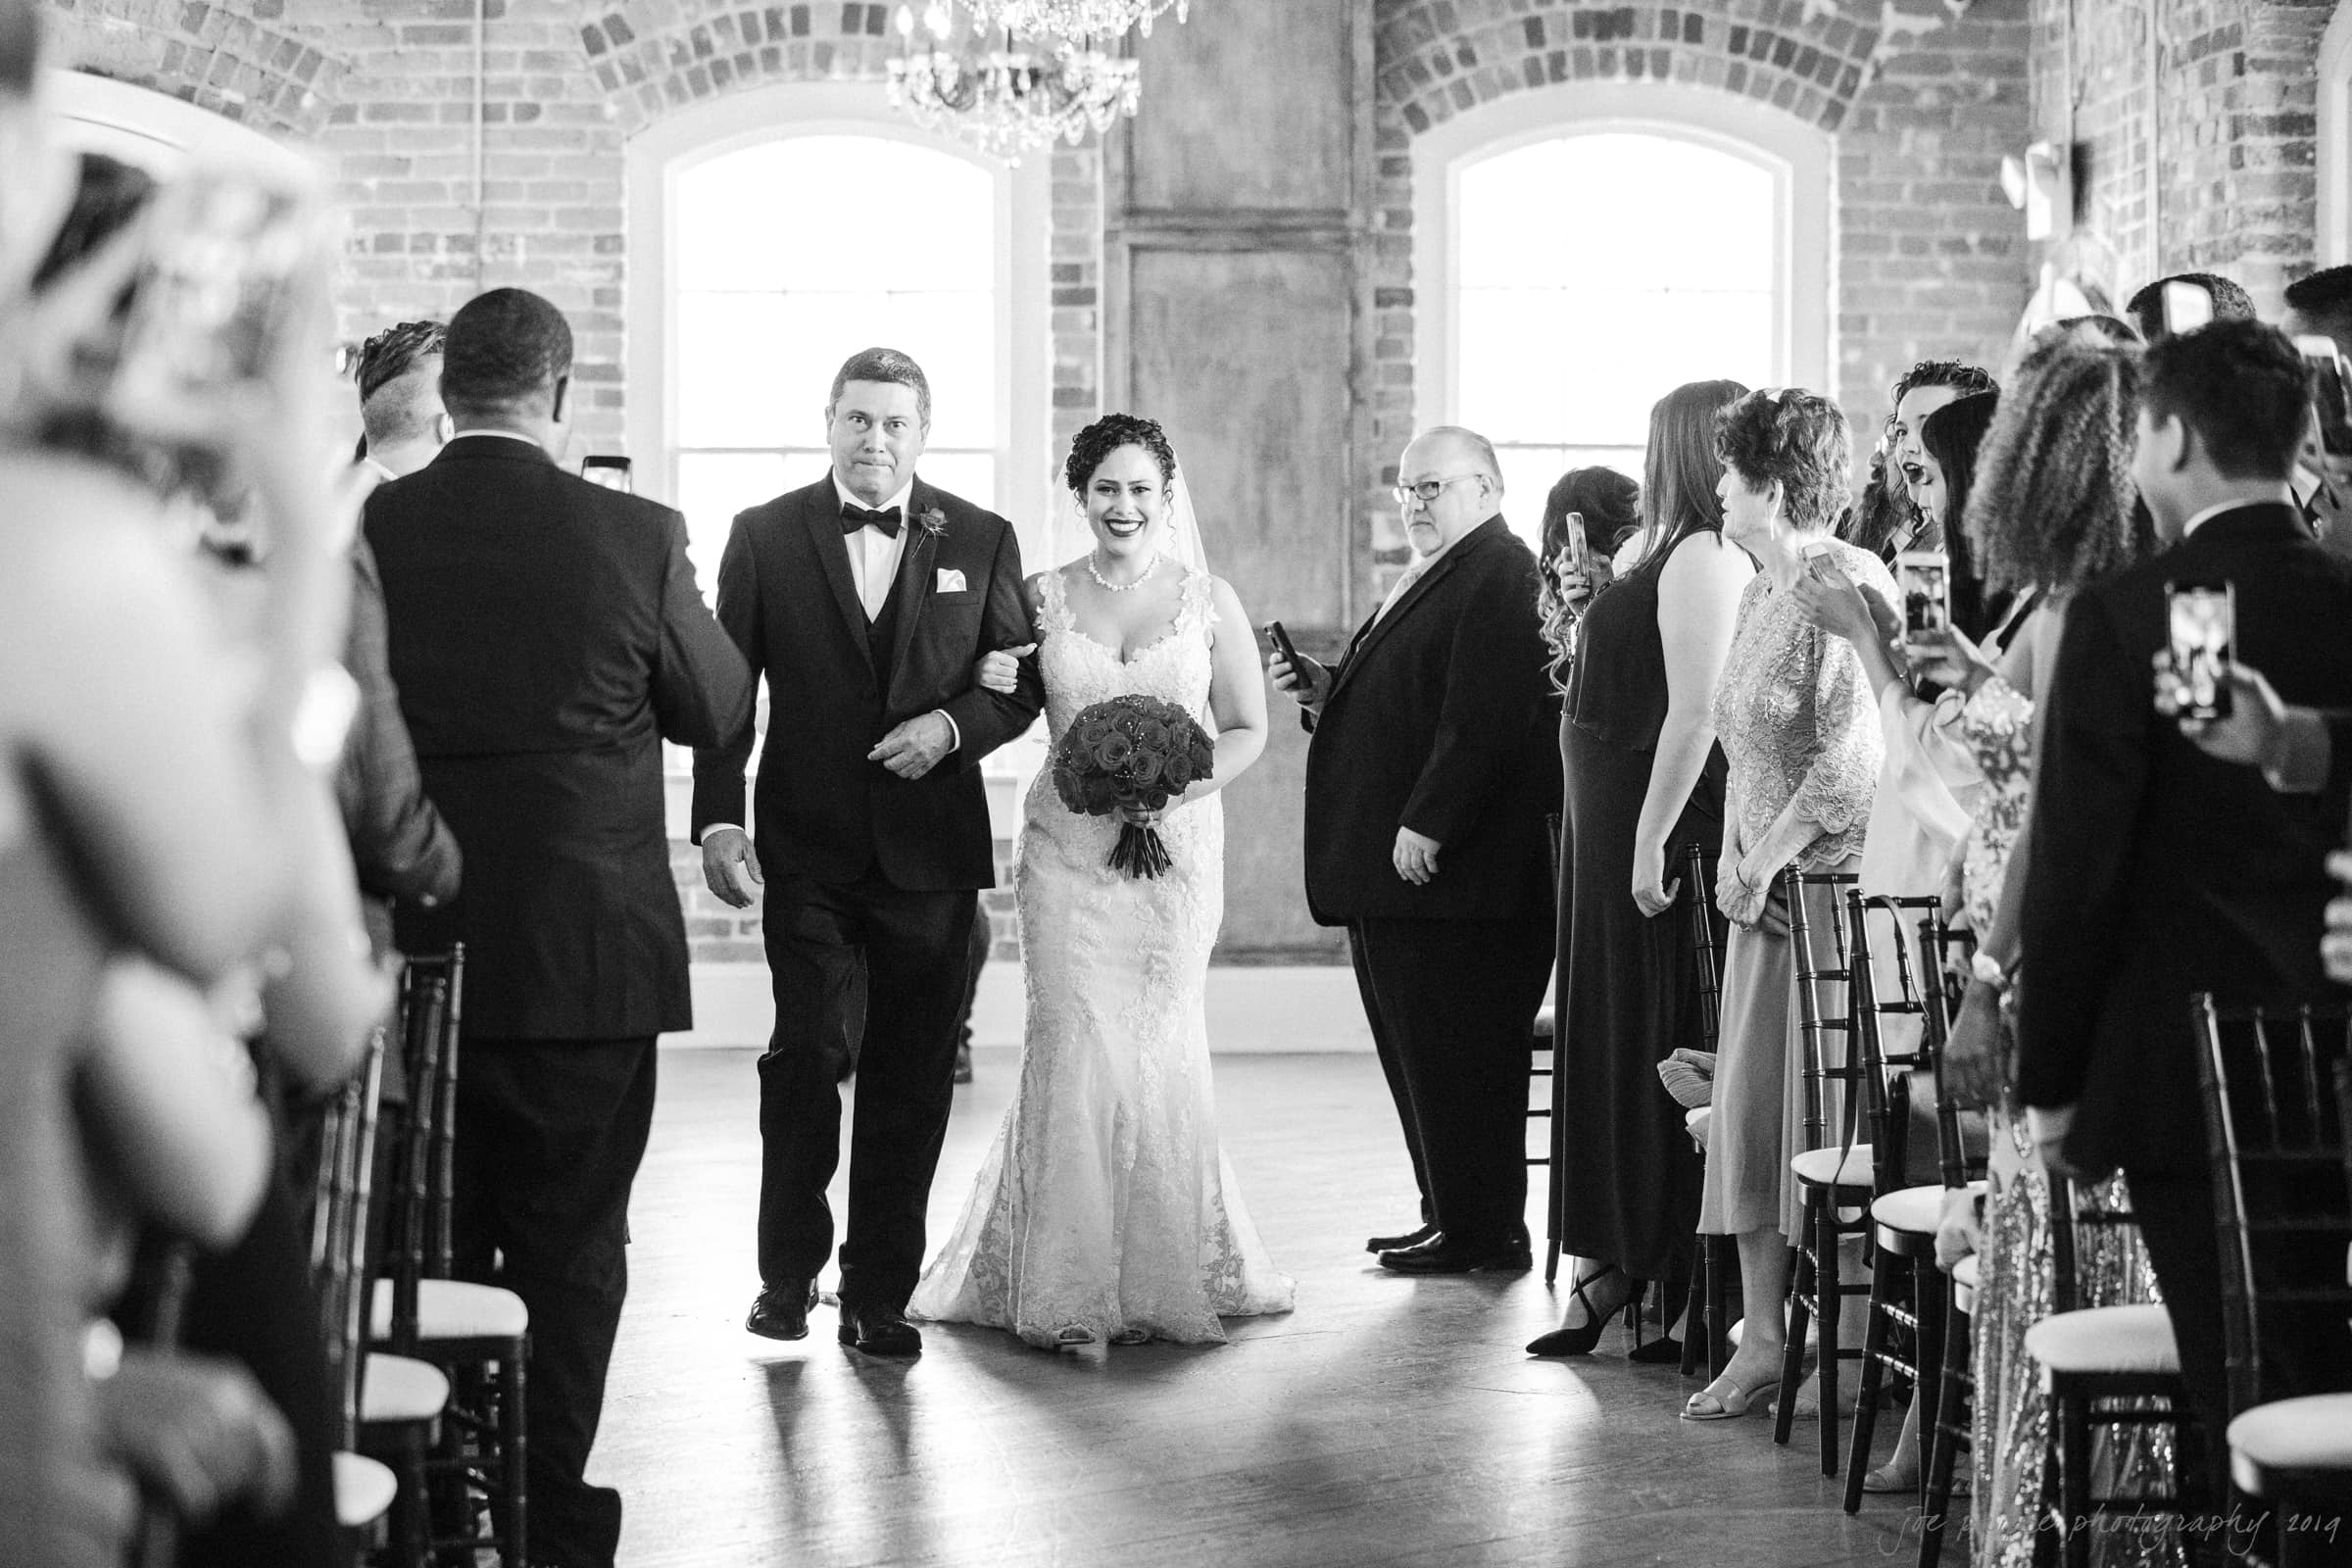 melrose knitting mill raleigh wedding photographer melanie anthony 19